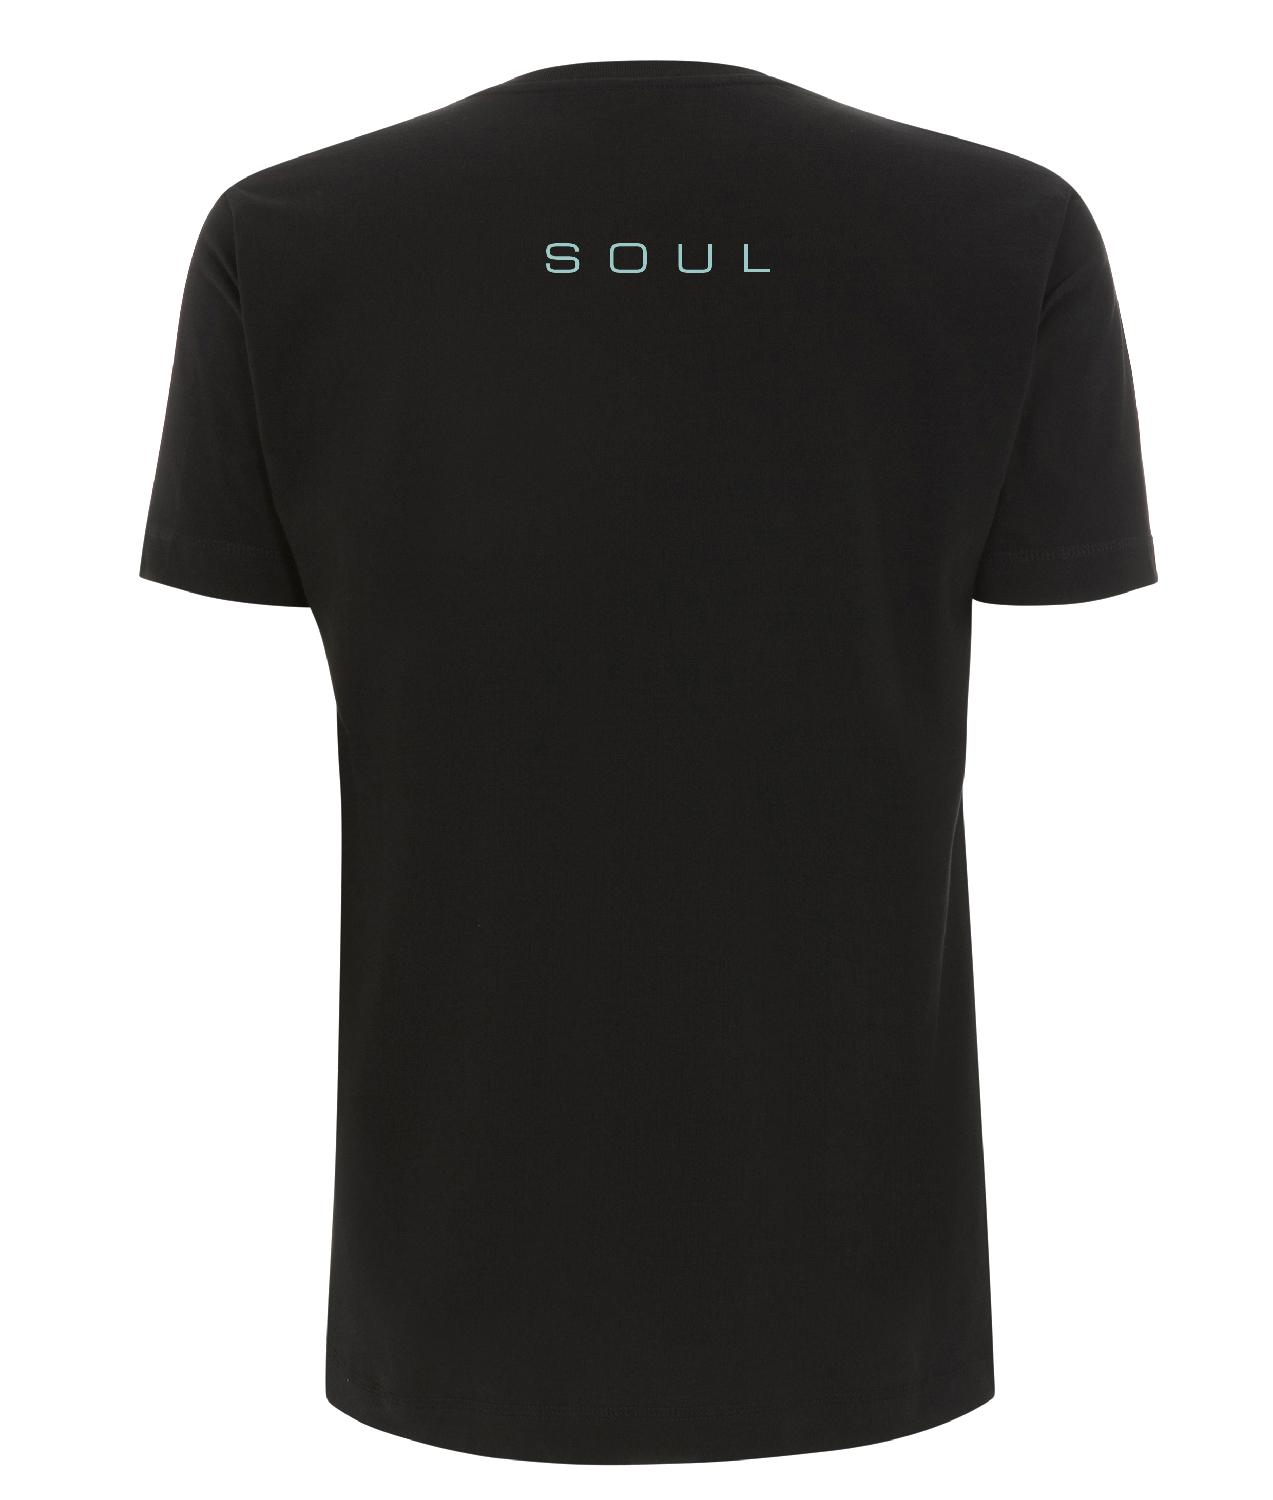 Marlon Roudette Electric Soul Men T-Shirt schwarz